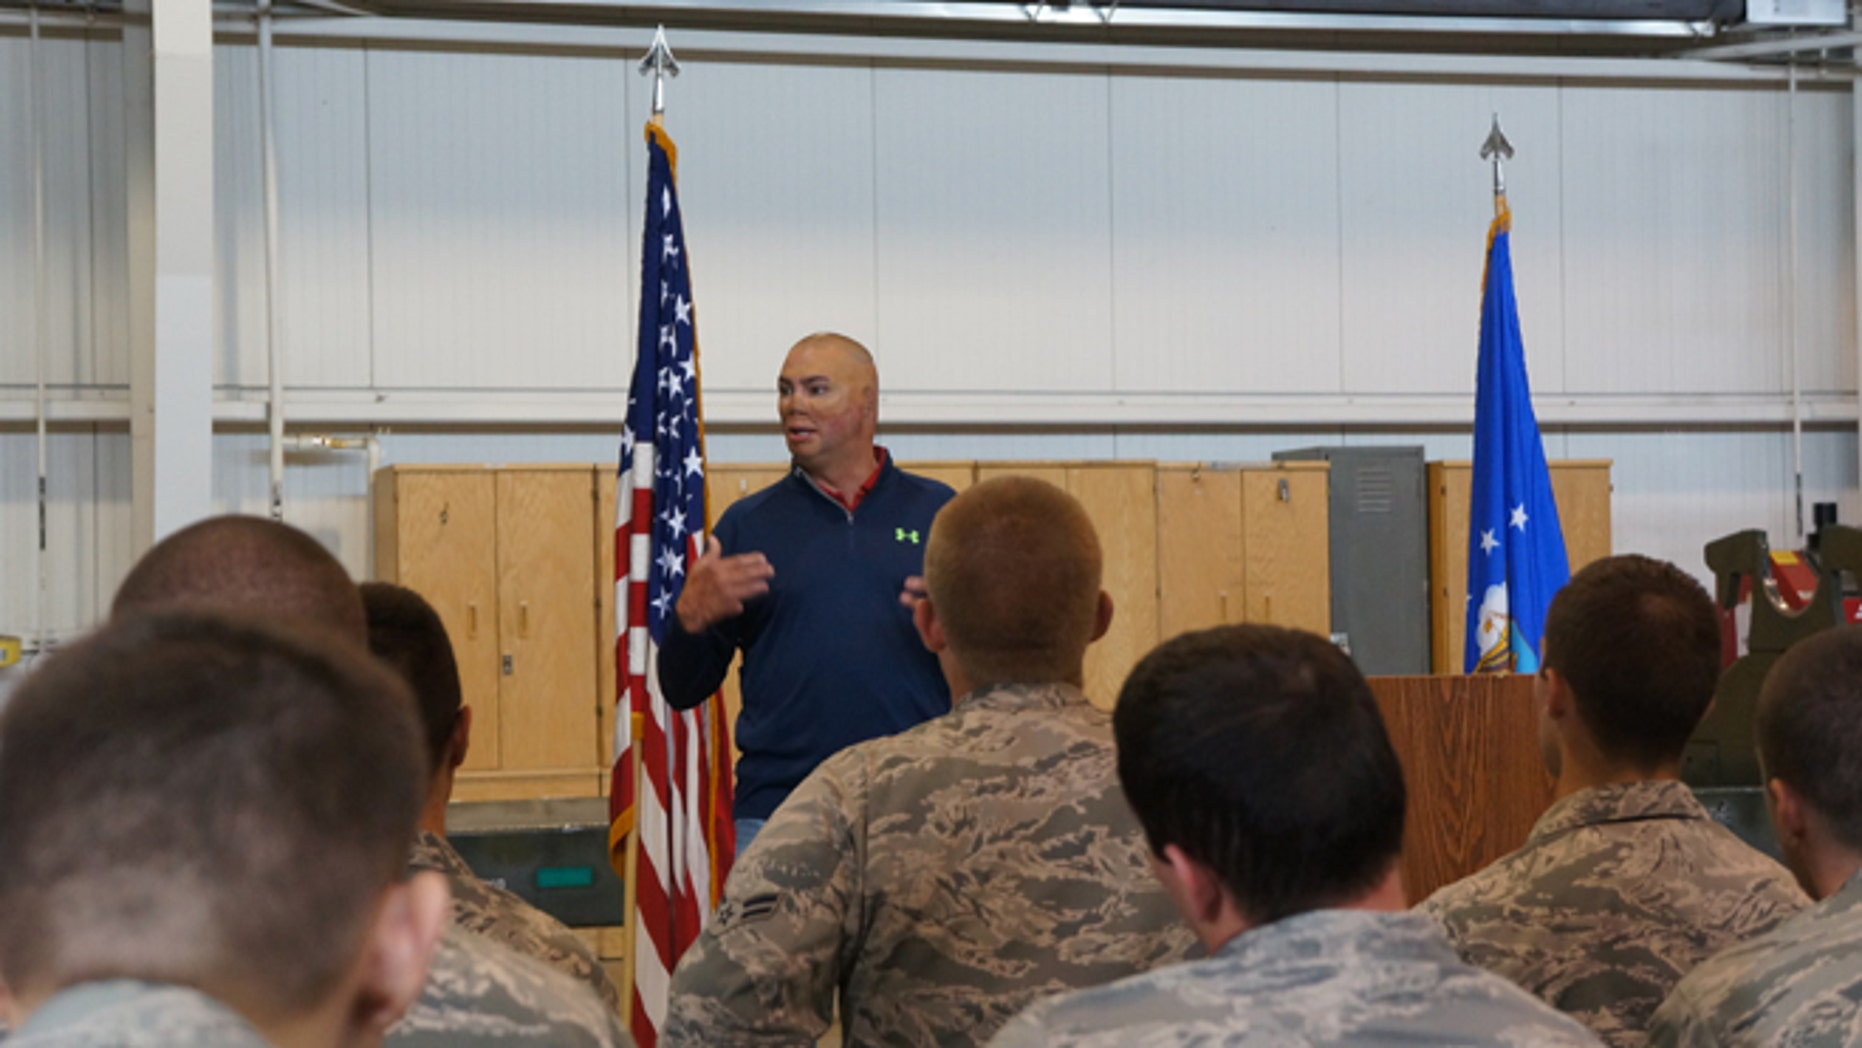 Author Shilo Harris speaks at Minot Air Force Base in North Dakota.